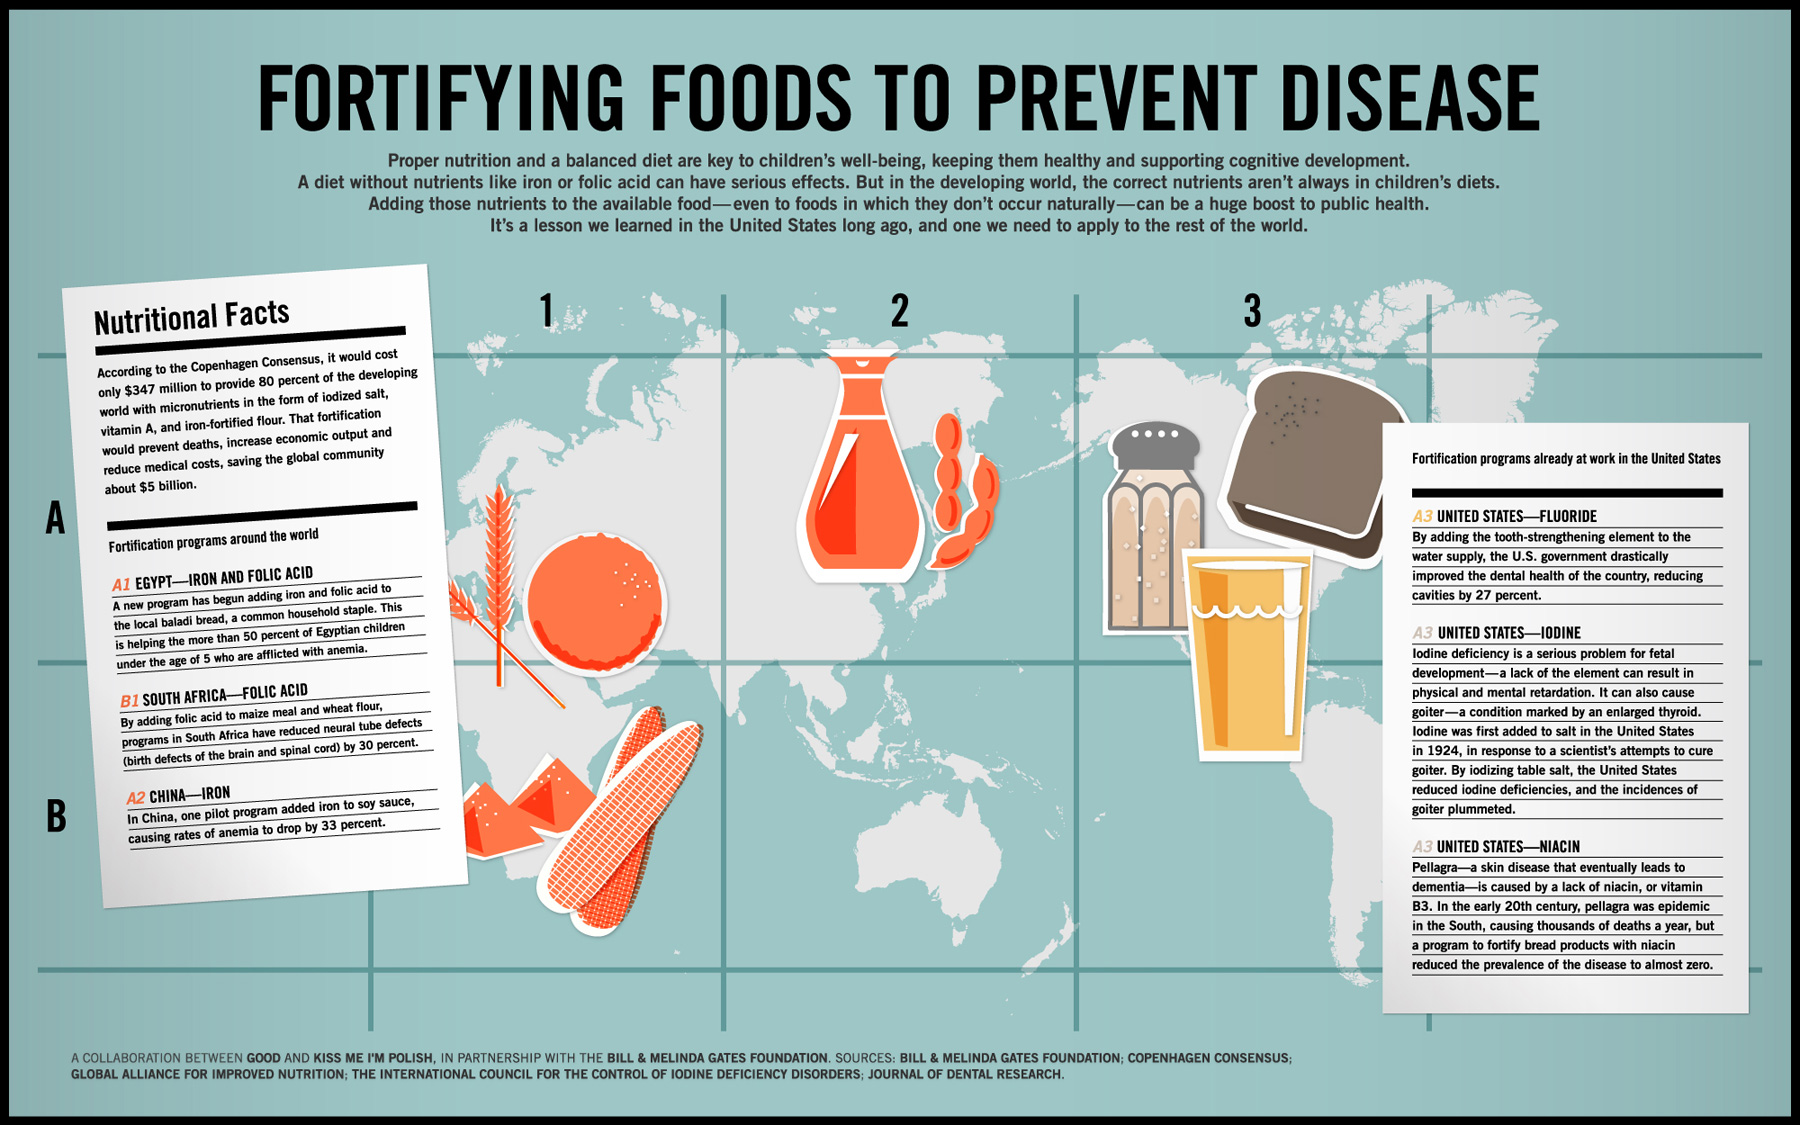 fortifying-foods-to-prevent-disease_5029161fdbac9